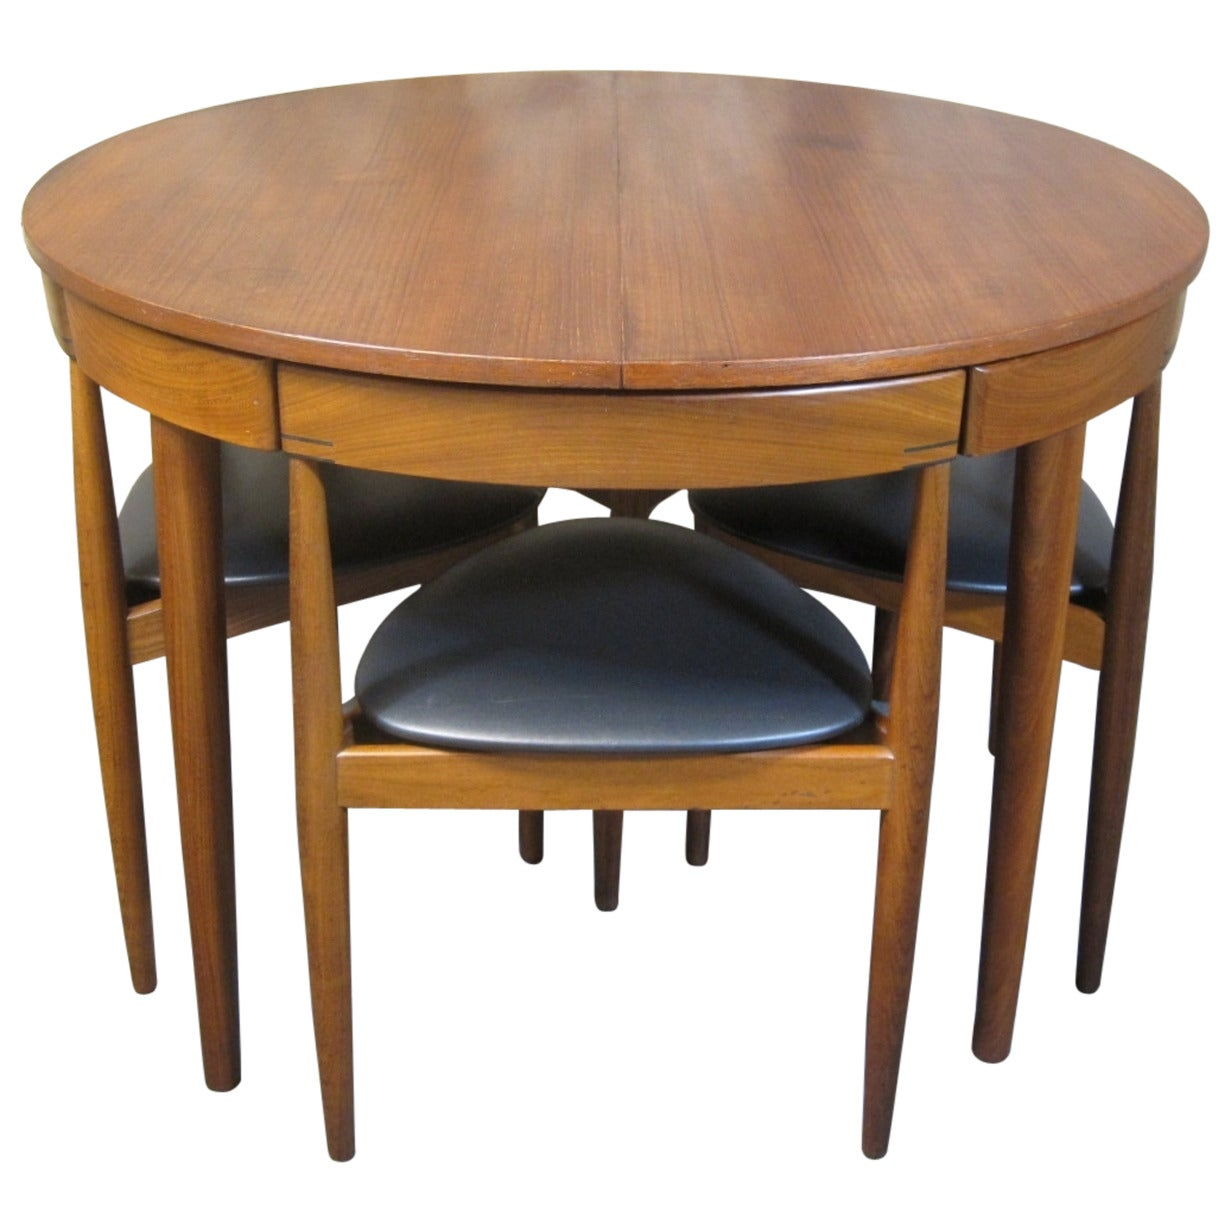 Hans olsen for frem rojle teak dining table and chairs for Mid century modern dining table